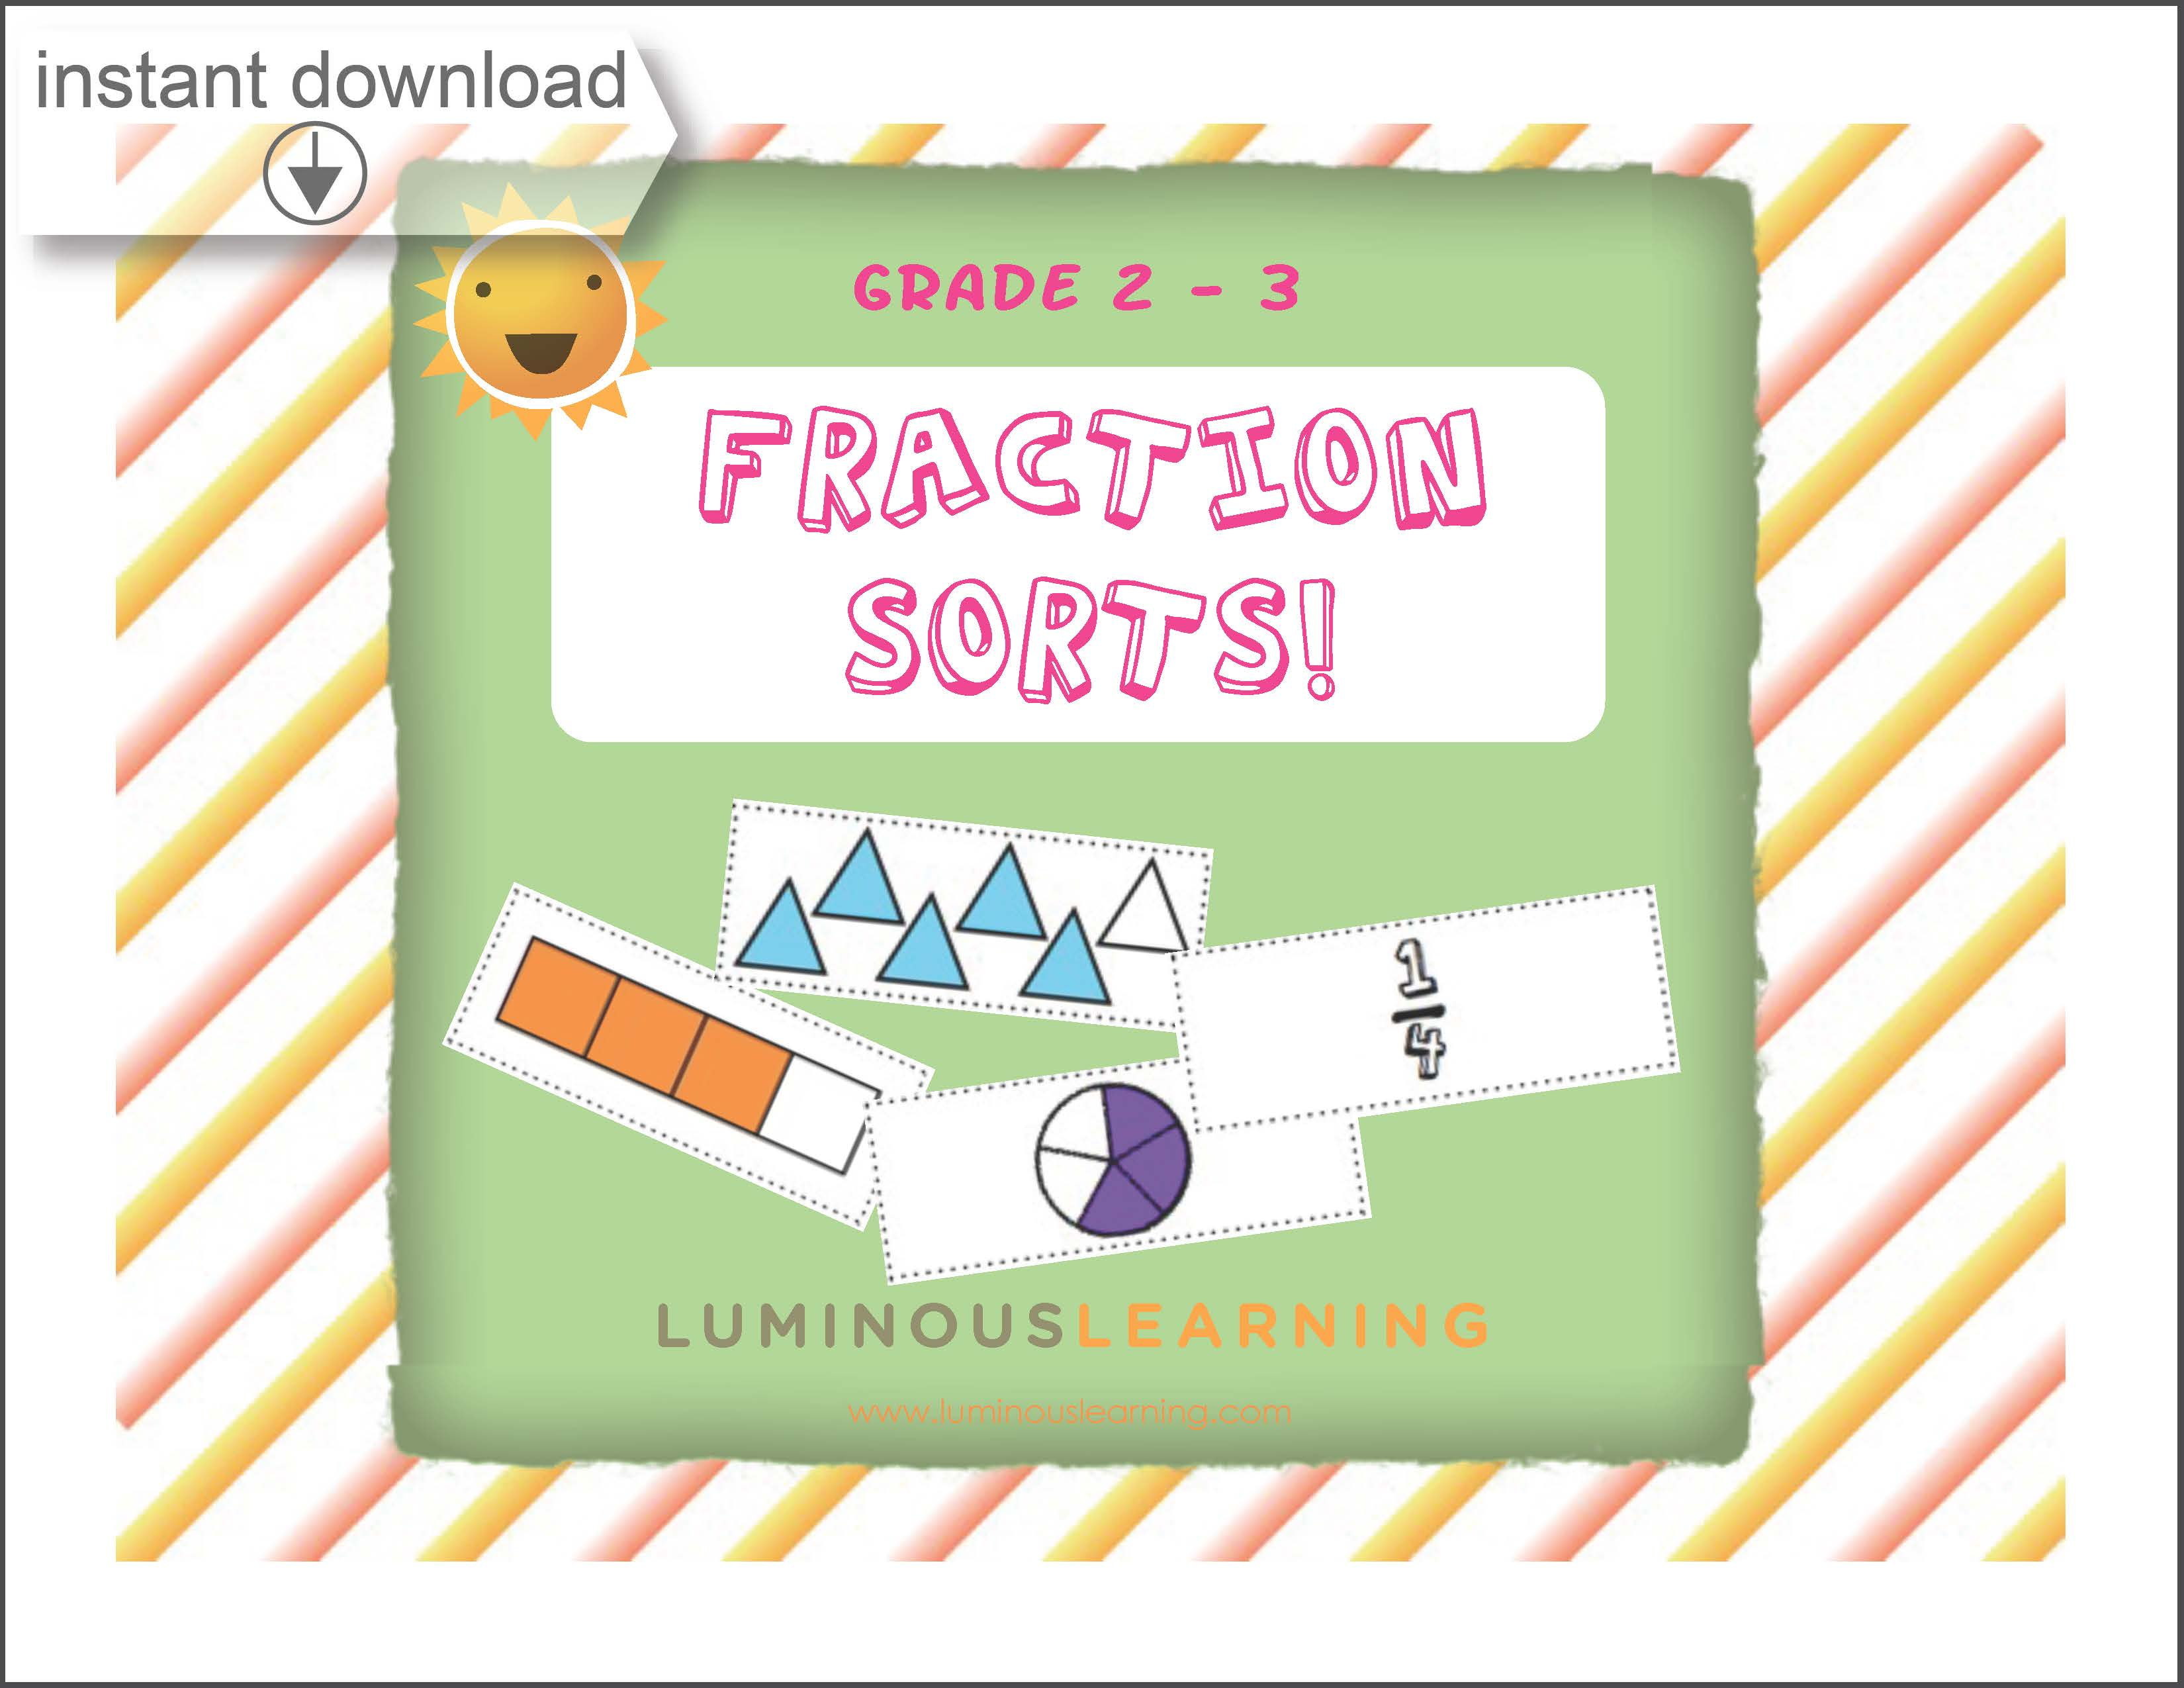 picture about Printable Activity Books named Grades 2 - 3 Portion Sorting: Printable Video game E book